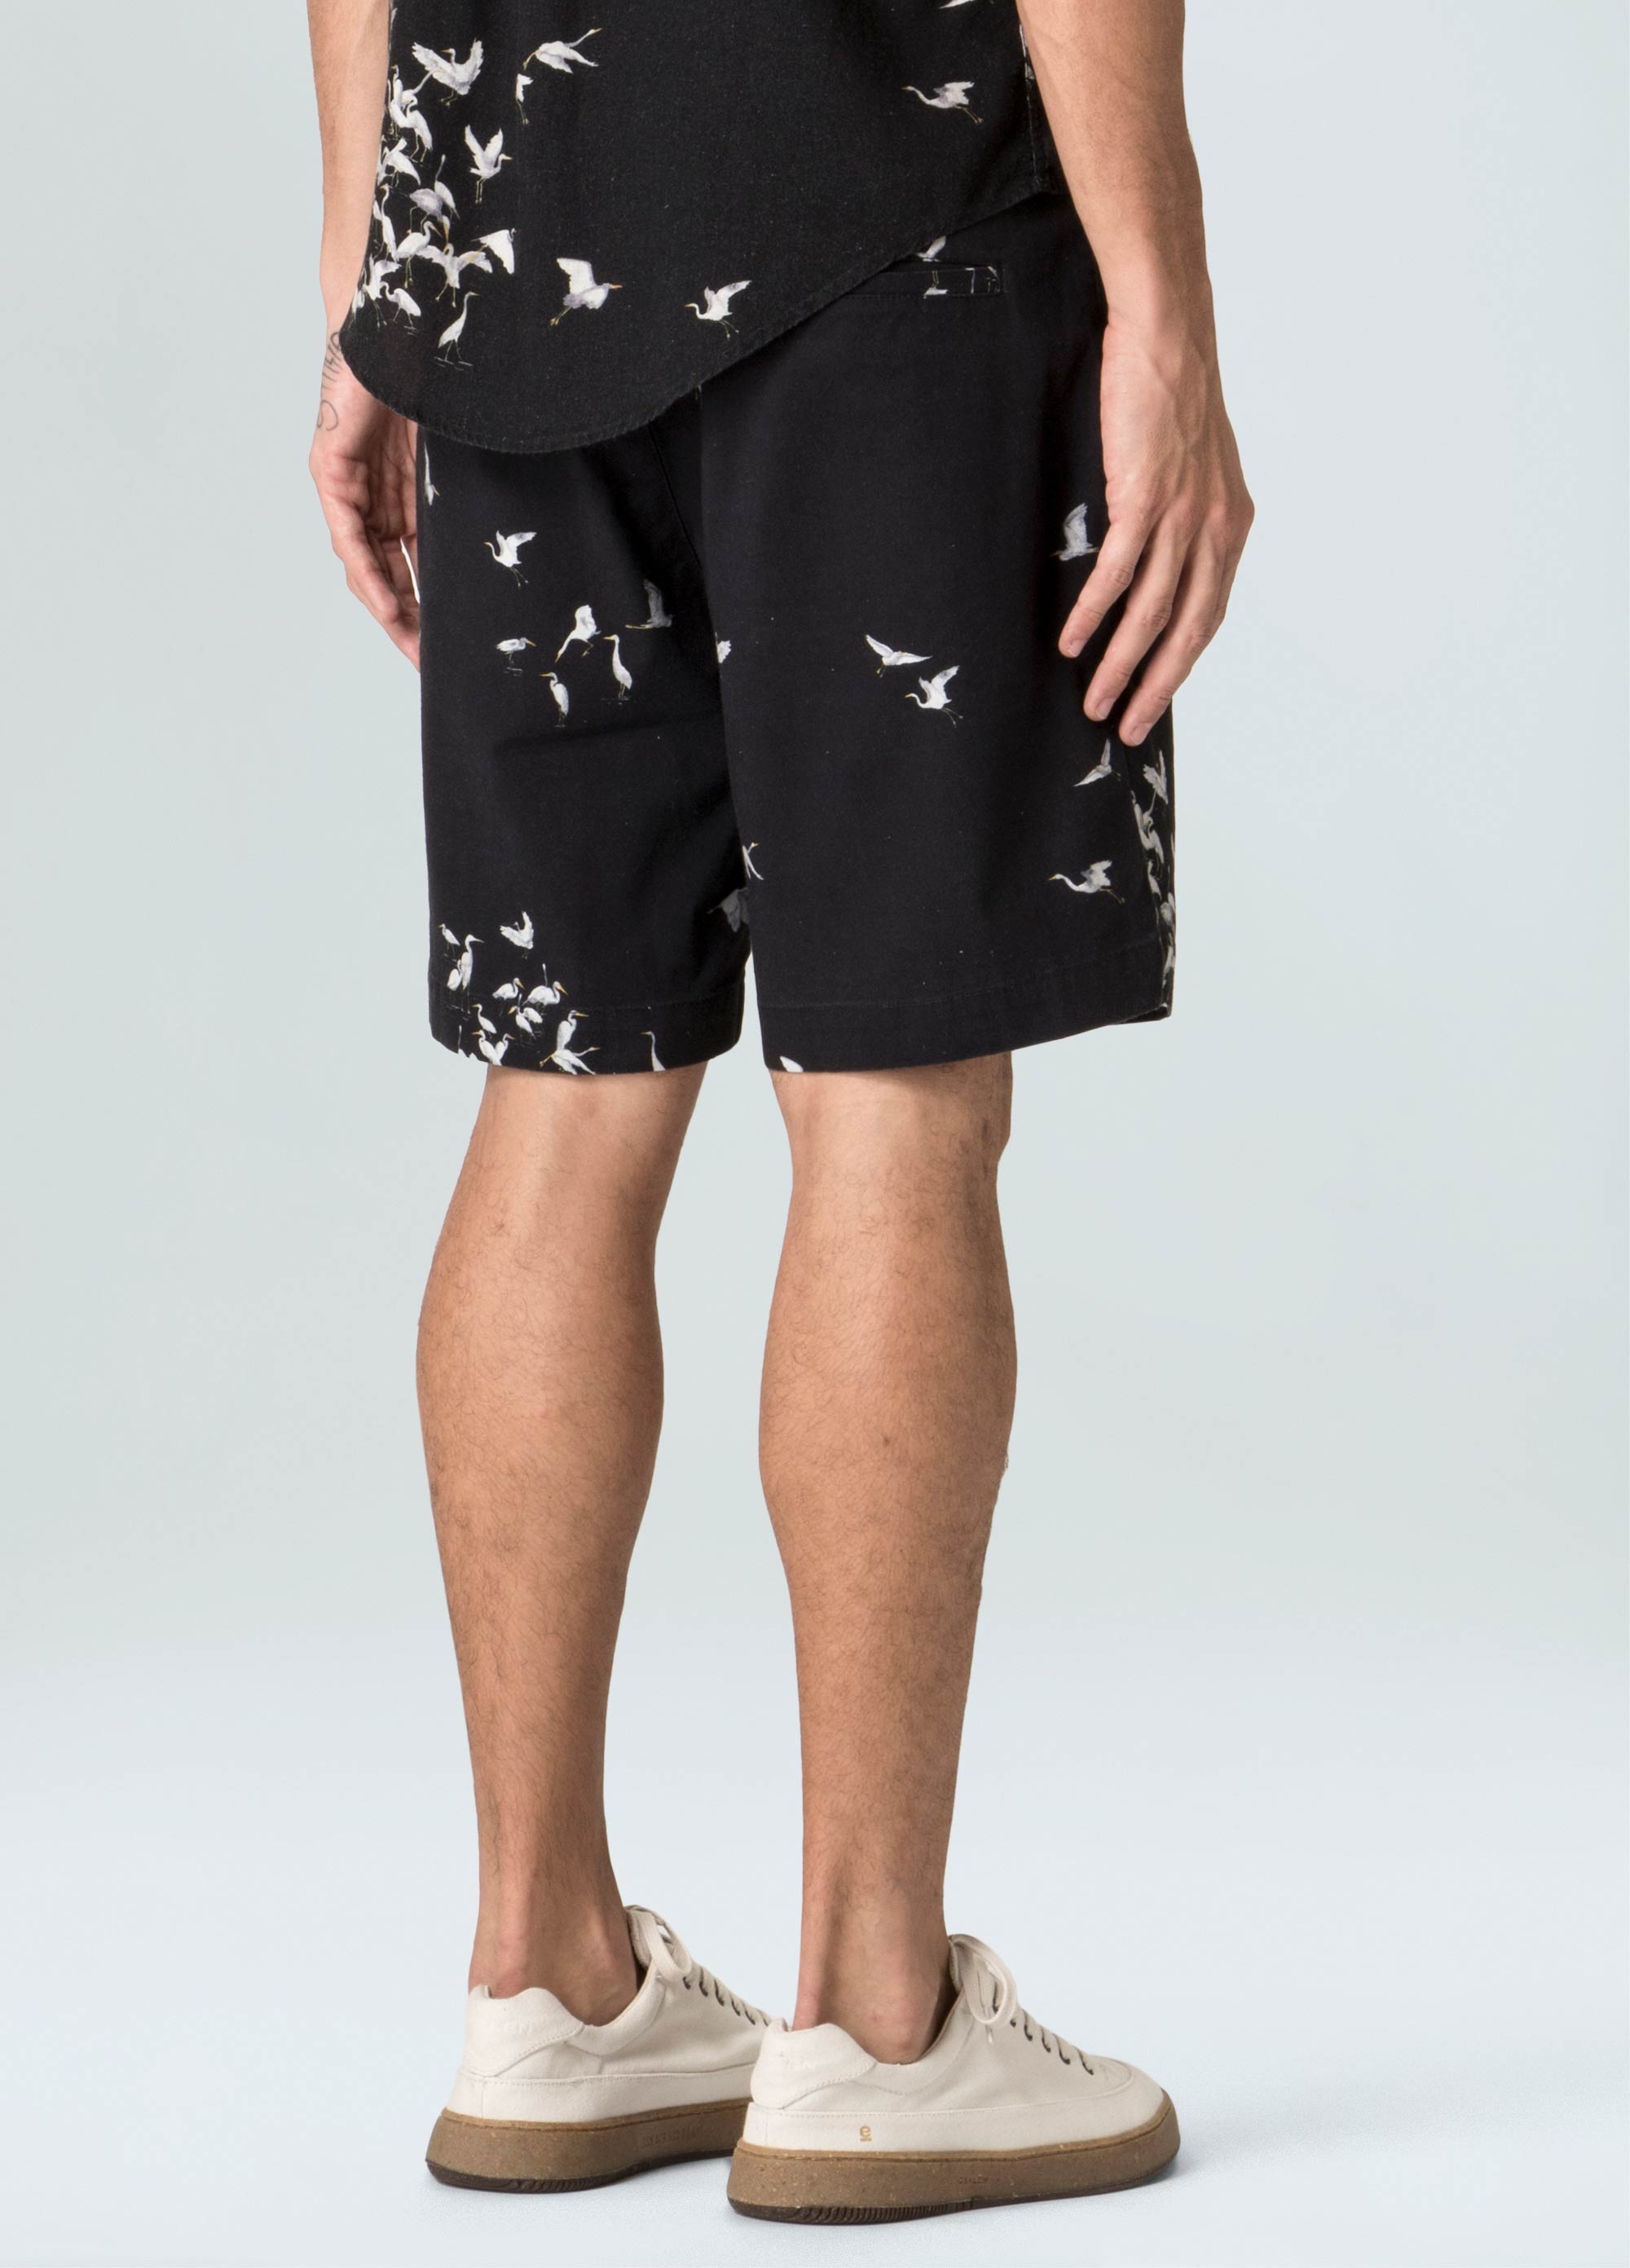 Heron Tailored Shorts